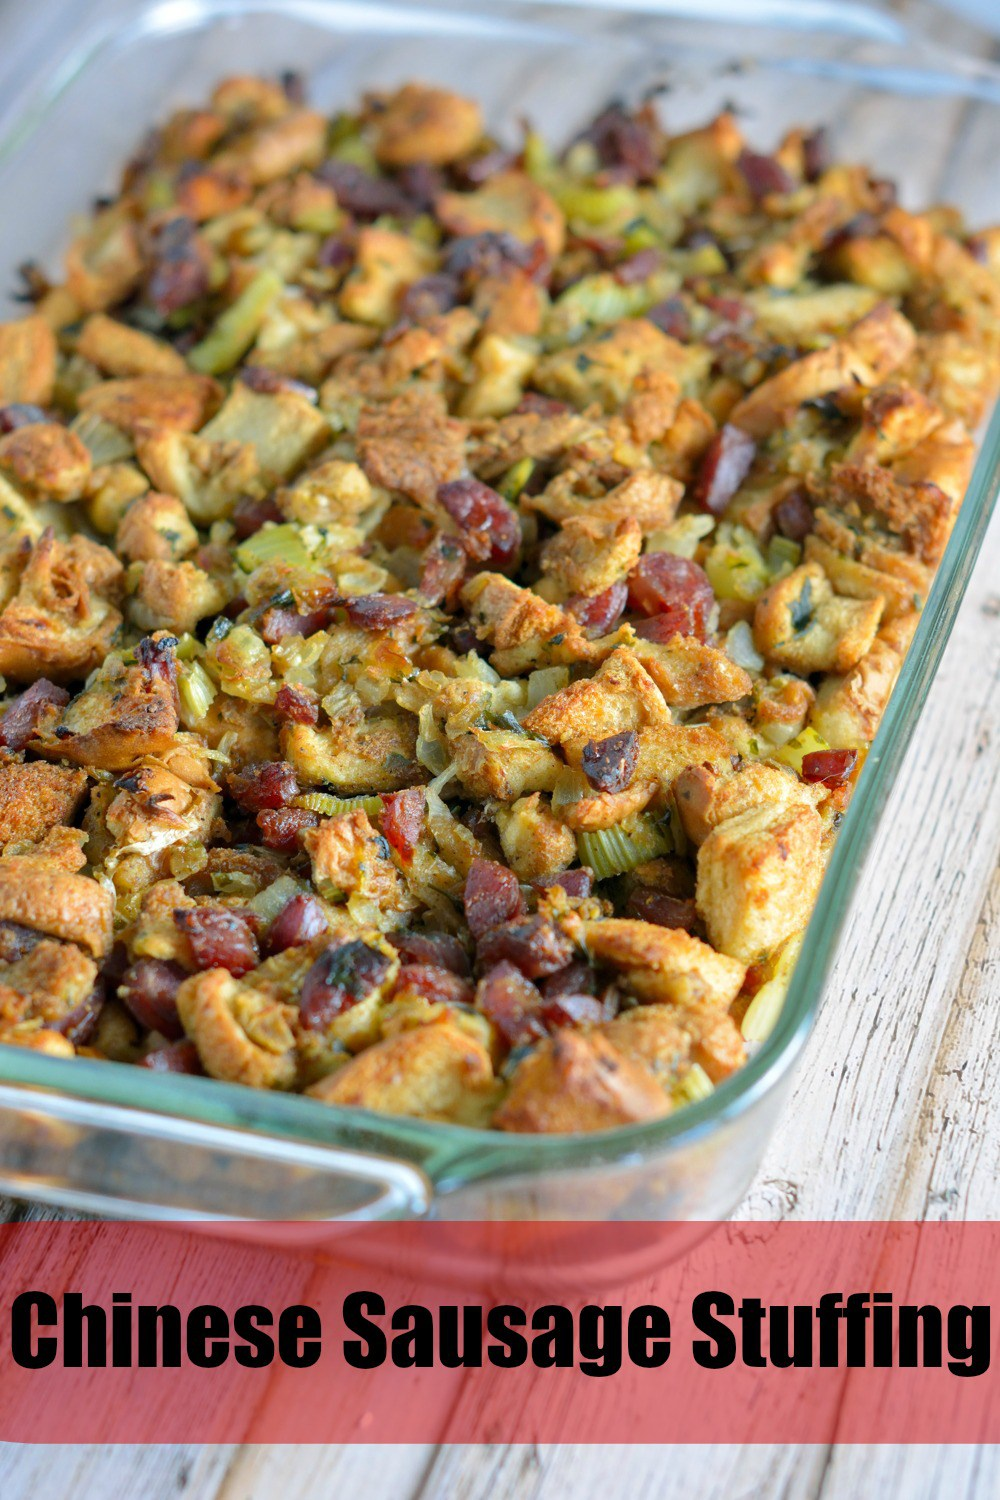 Chinese Sausage Stuffing uses Chinese sausage with a sweet blend of ...